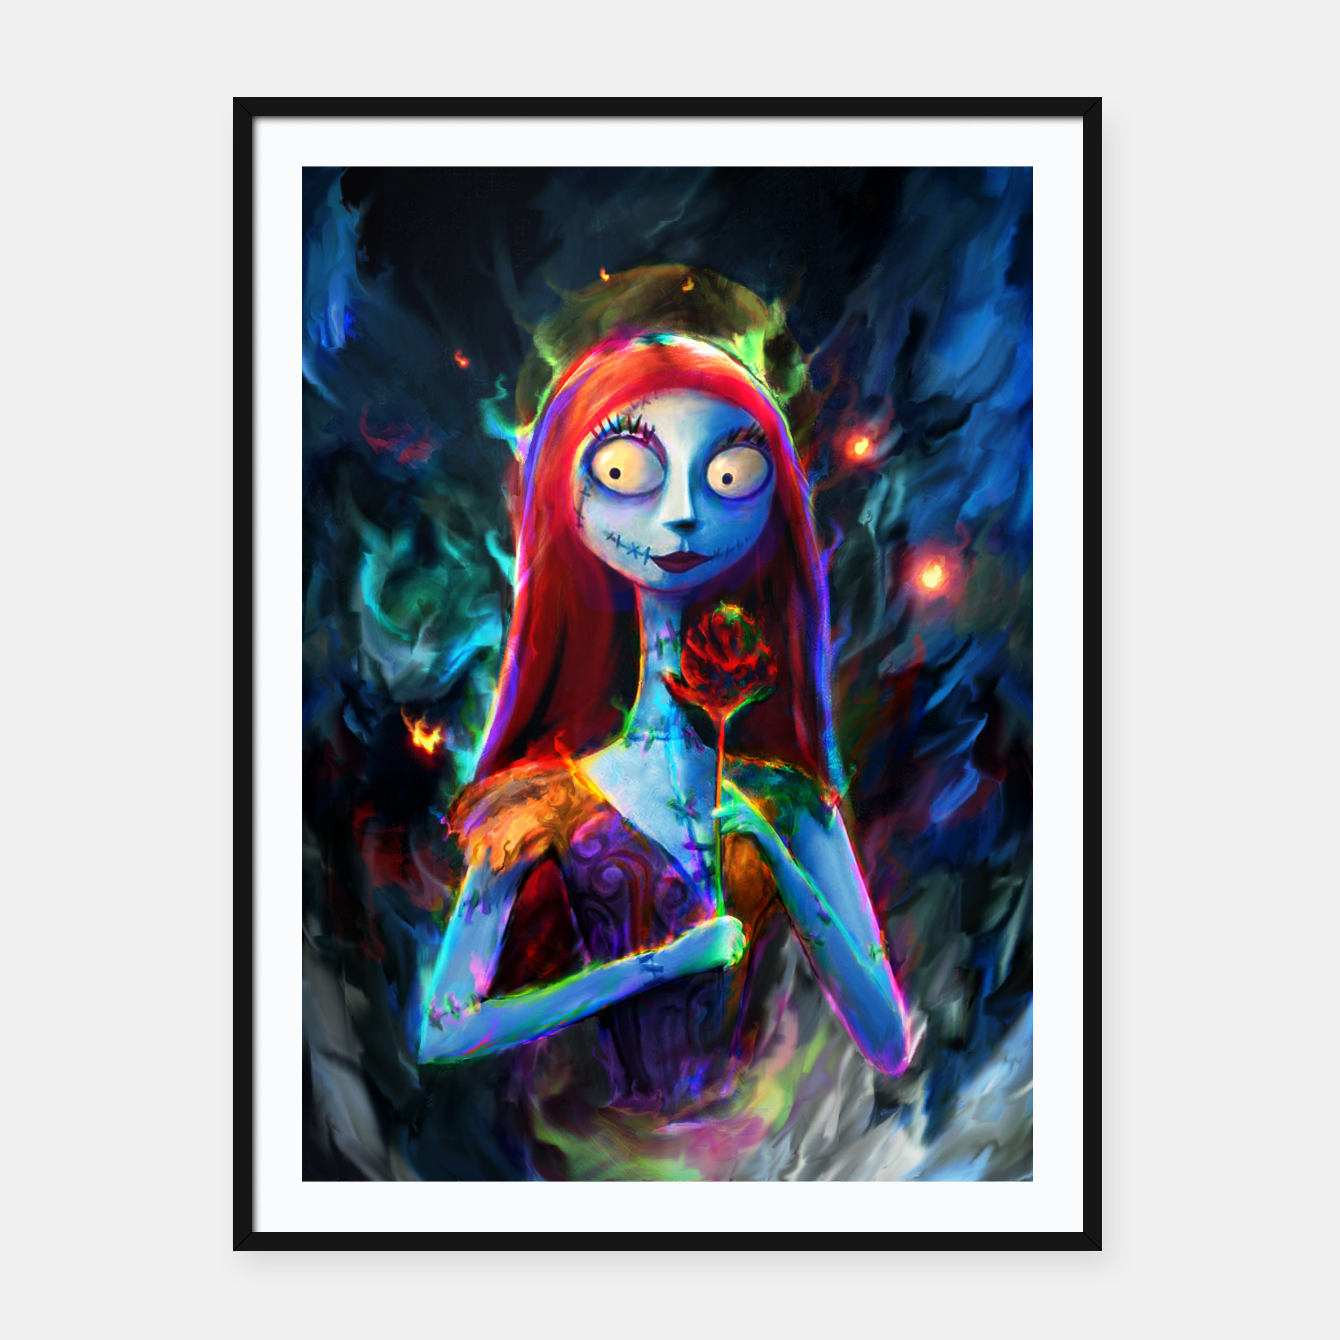 Zdjęcie  Nightmare Before Christmas. Sally Framed poster - Live Heroes